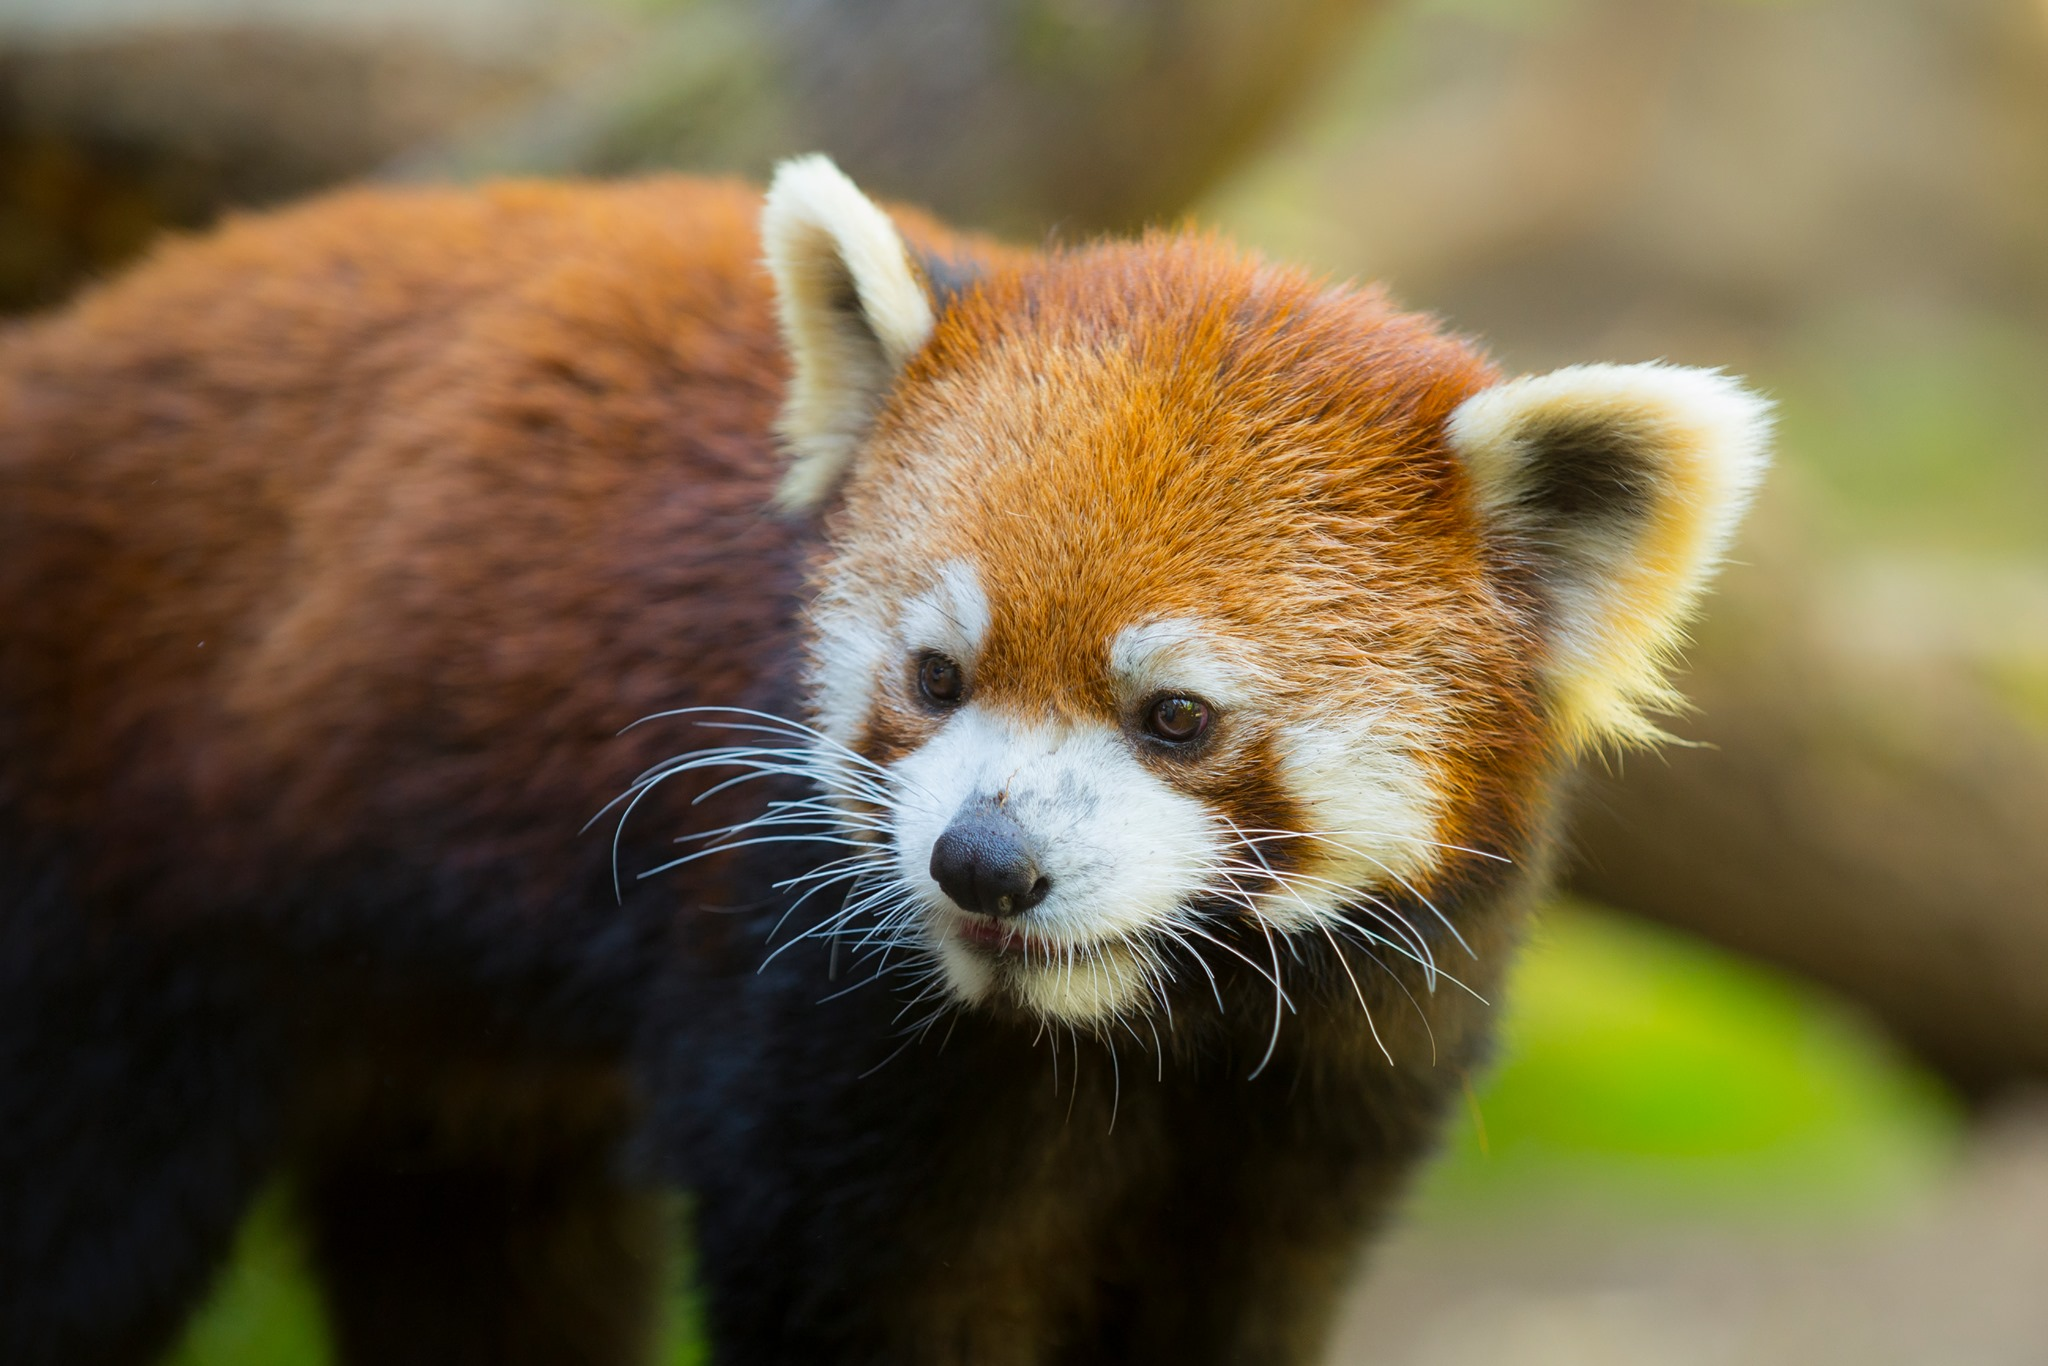 image of a red panda courtesy of the Oregon Zoo